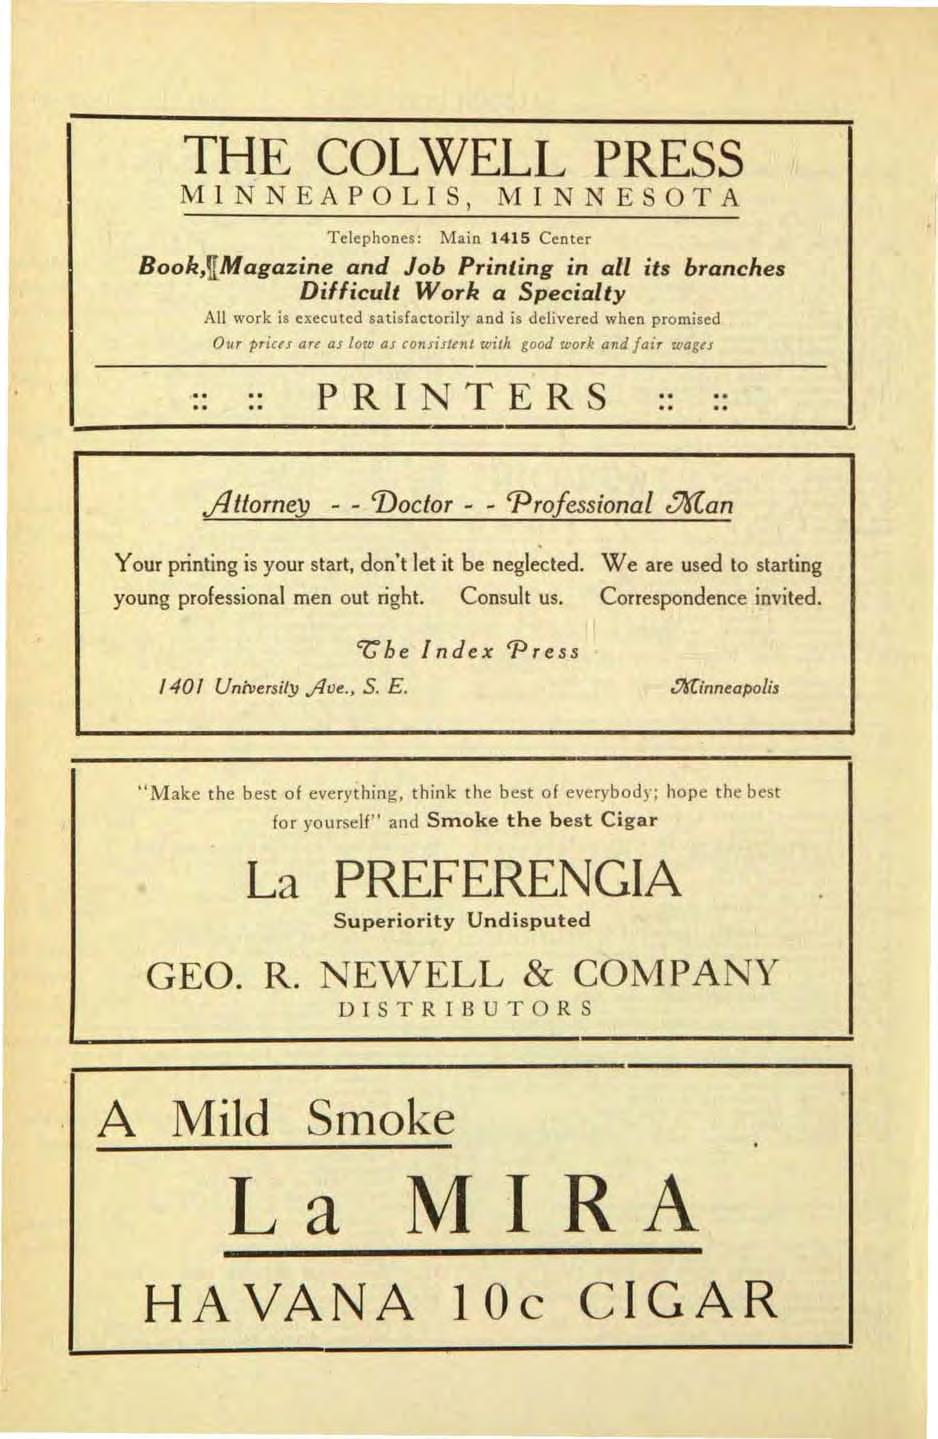 THE COLWELL PRESS MINNEAPOLIS, MINNE TA Telephones: Main 1415 Center Book,Y:Magazine and Job Printing in all its branches Difficult Work a Specialty All work is executed satisfactorily and is